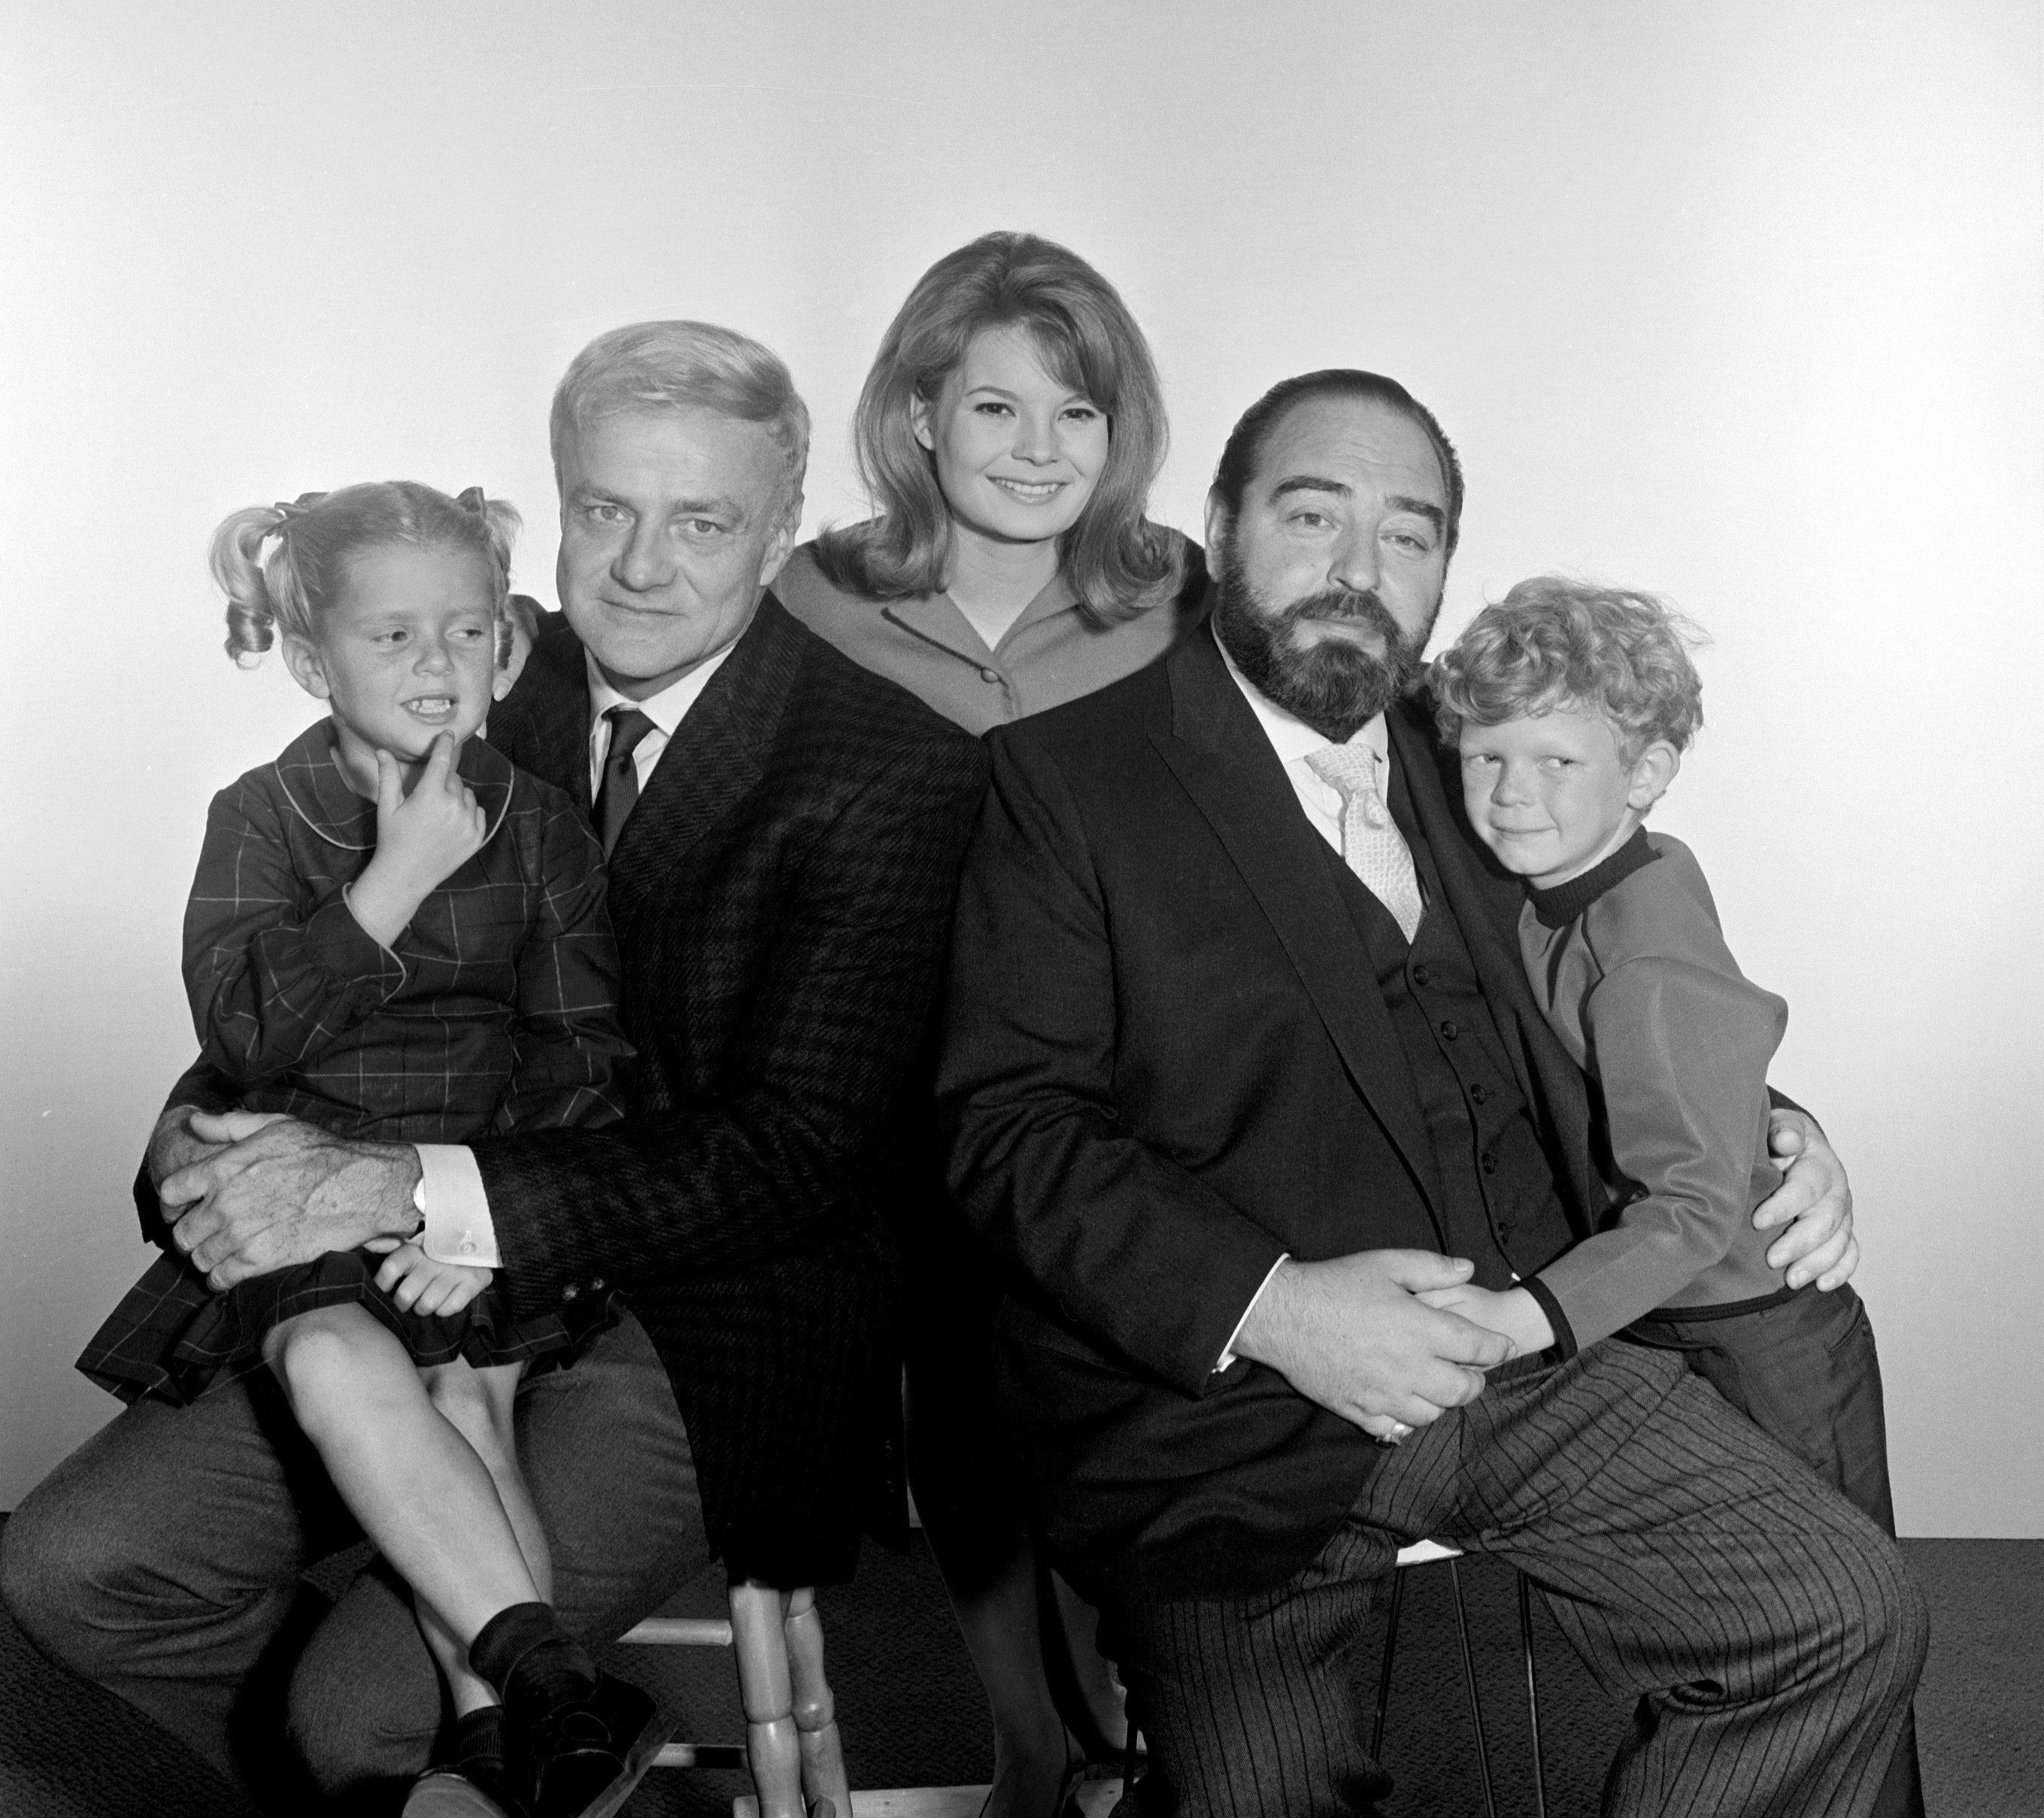 Portrait of the cast of the television series 'Family Affair,' August 10, 1966. Pictured, from left, are American actors Anissa Jones (1958 - 1976) as Buffy, Brian Keith (1921 - 1997) as Bill Davis, and Kathy Garver as Cissy, British actor Sebastian Cabot (1918 - 1977) as Mr. French, and American actor Johnny Whitaker as Jody. (Photo by CBS Photo Archive/Getty Images)